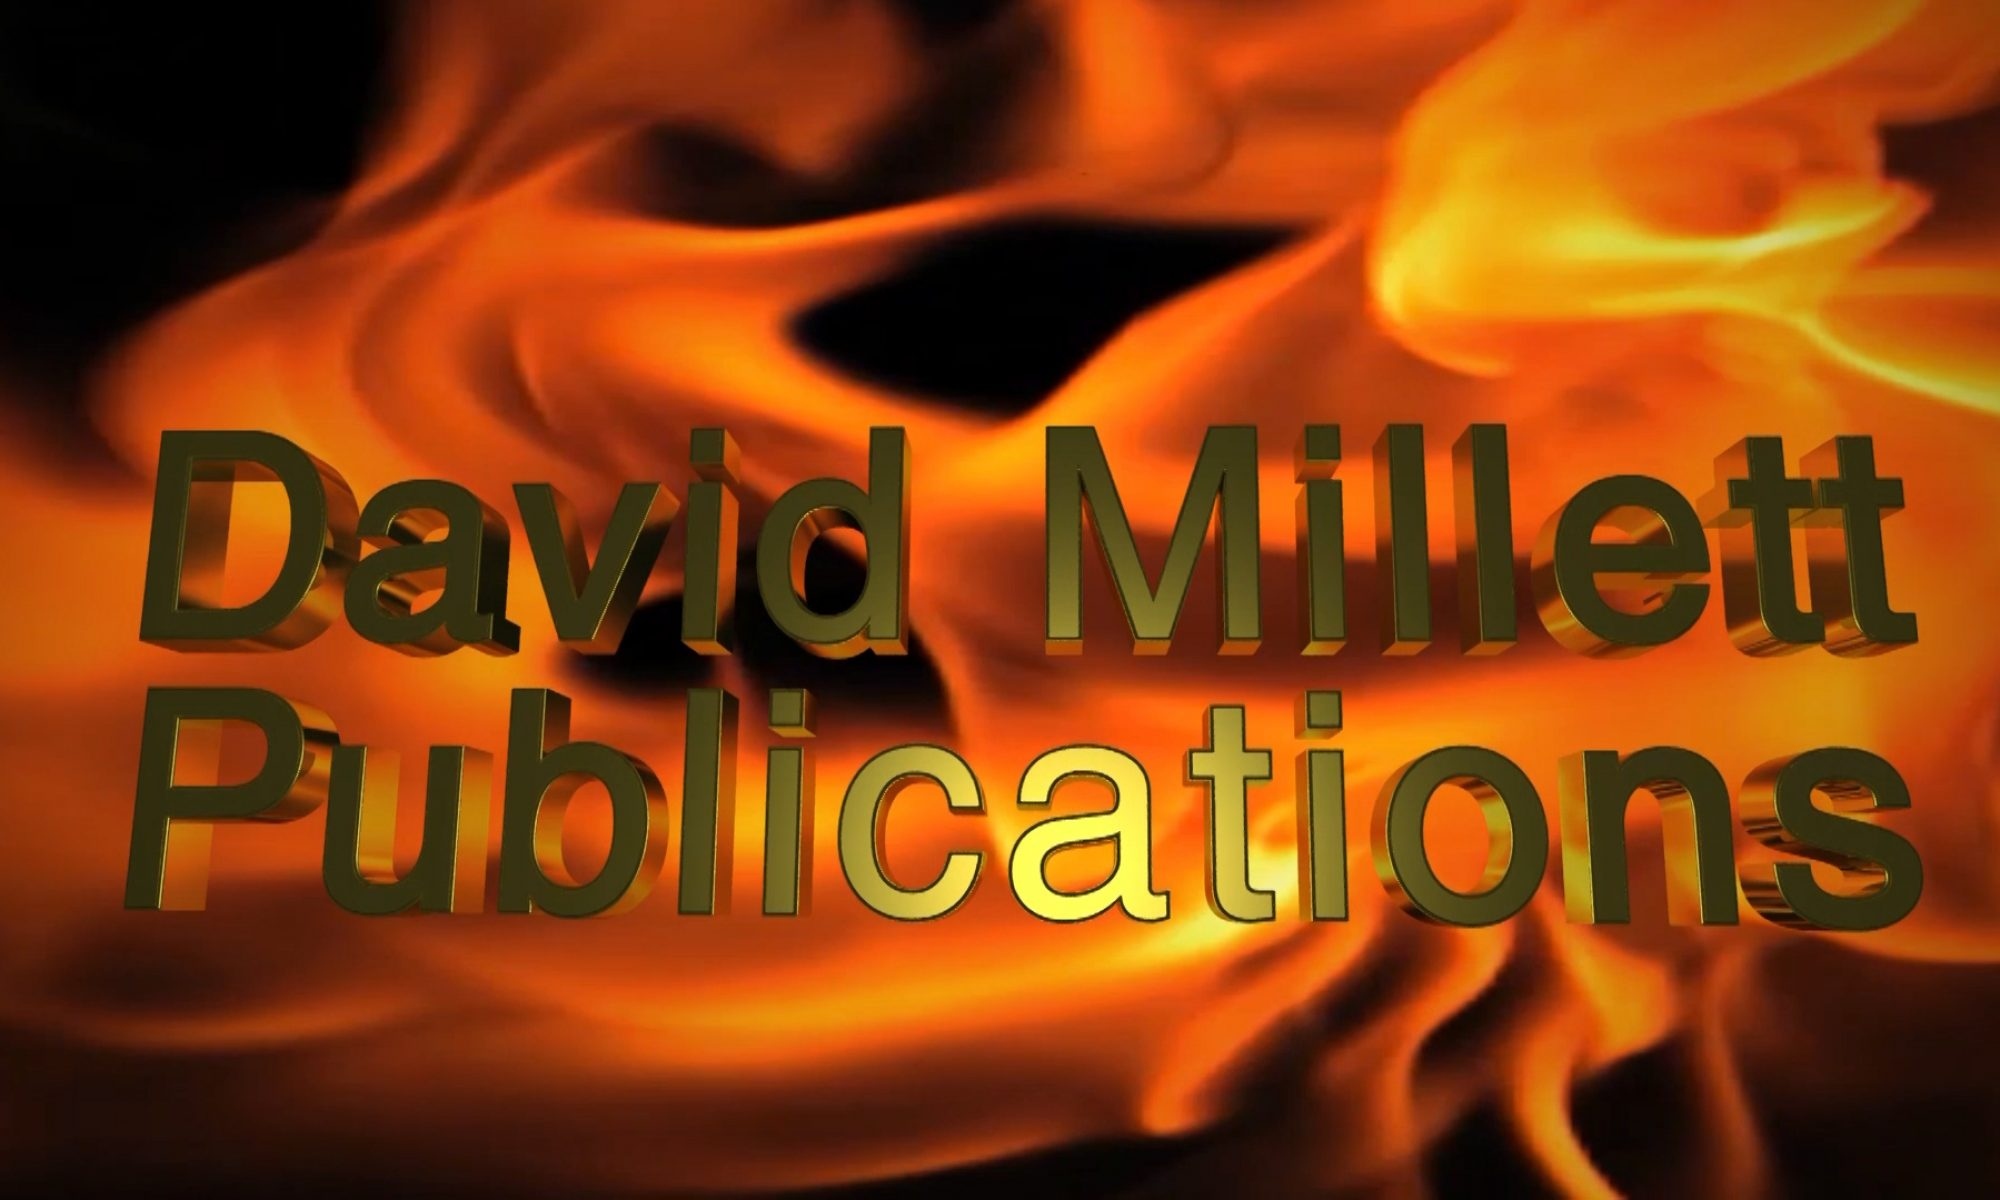 David Millett Publications